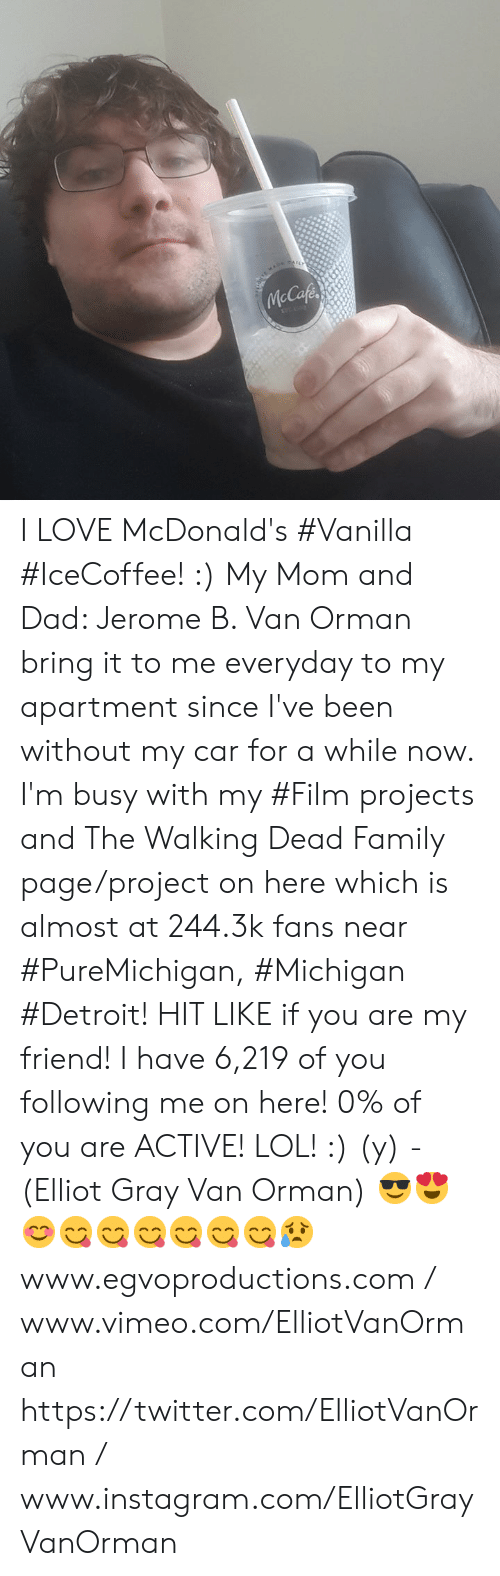 Dad, Detroit, and Family: I LOVE McDonald's #Vanilla #IceCoffee! :) My Mom and Dad: Jerome B. Van Orman bring it to me everyday to my apartment since I've been without my car for a while now. I'm busy with my #Film projects and The Walking Dead Family page/project on here which is almost at 244.3k fans near #PureMichigan, #Michigan #Detroit! HIT LIKE if you are my friend! I have 6,219 of you following me on here! 0% of you are ACTIVE! LOL! :) (y) -(Elliot Gray Van Orman) 😎😍😊😋😋😋😋😋😋😥  www.egvoproductions.com / www.vimeo.com/ElliotVanOrman https://twitter.com/ElliotVanOrman / www.instagram.com/ElliotGrayVanOrman